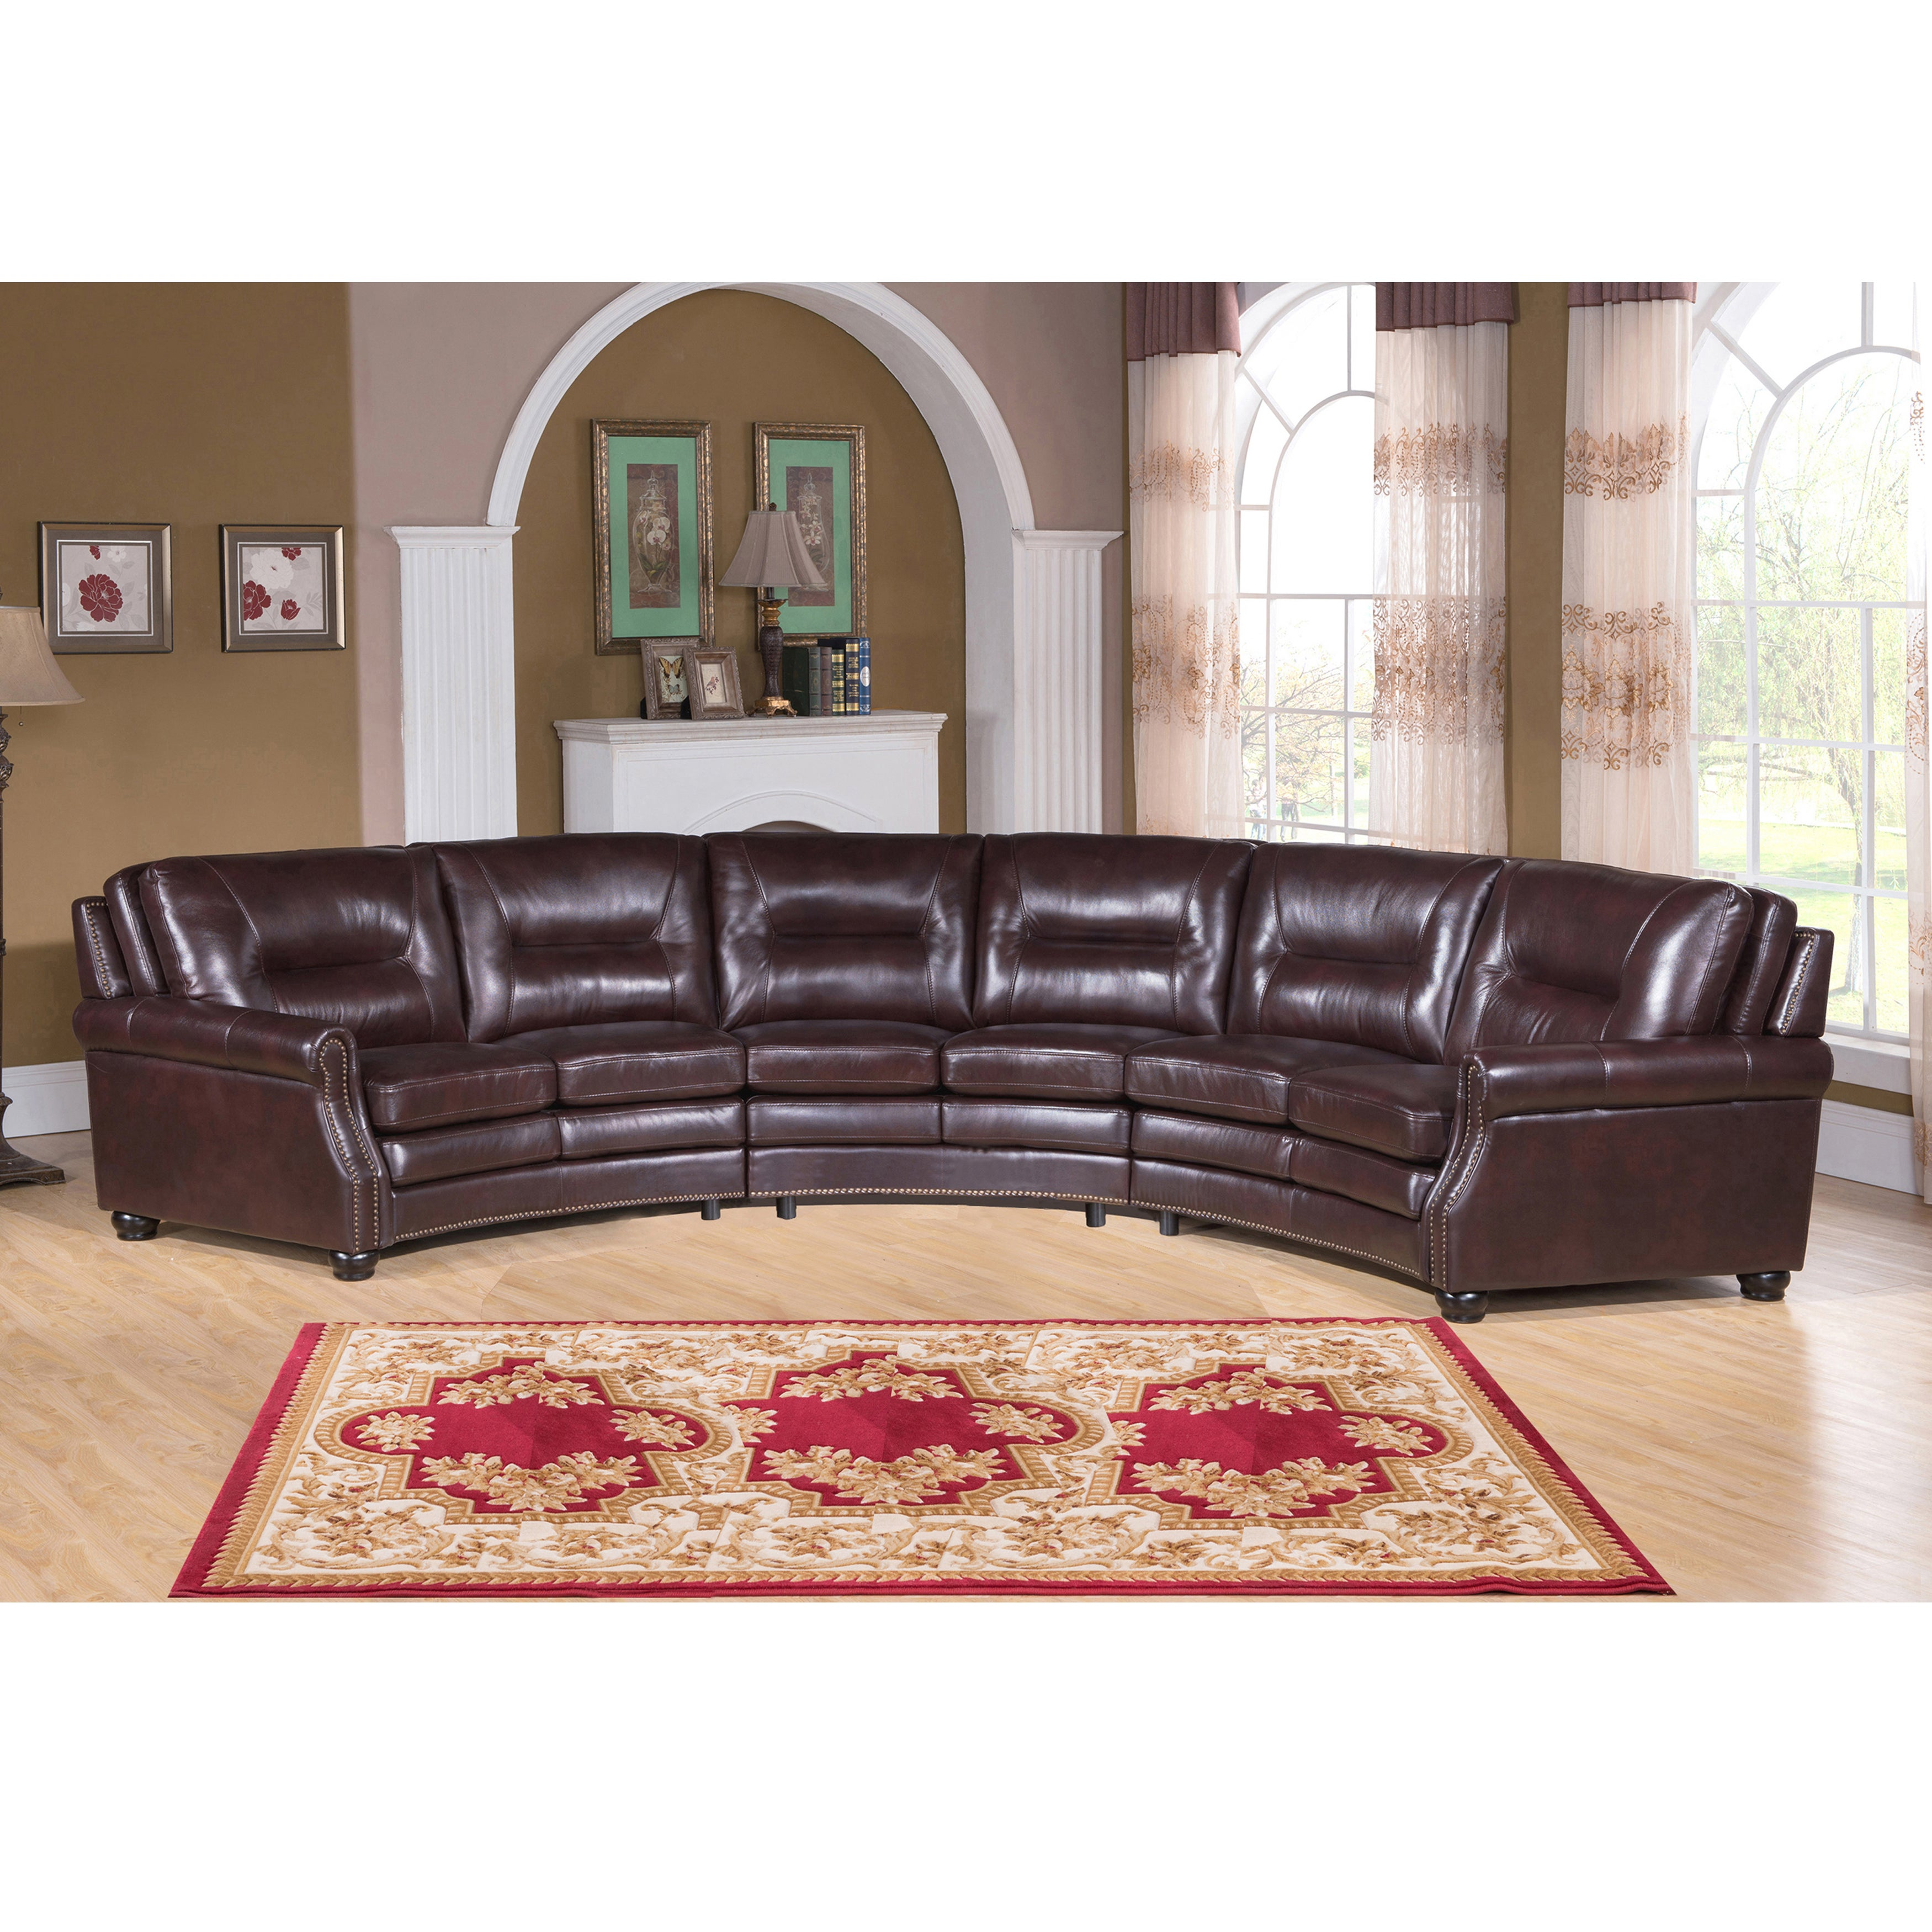 of modern gallery leather from home full inspiration top ideas sofa sectional insight grain decorations